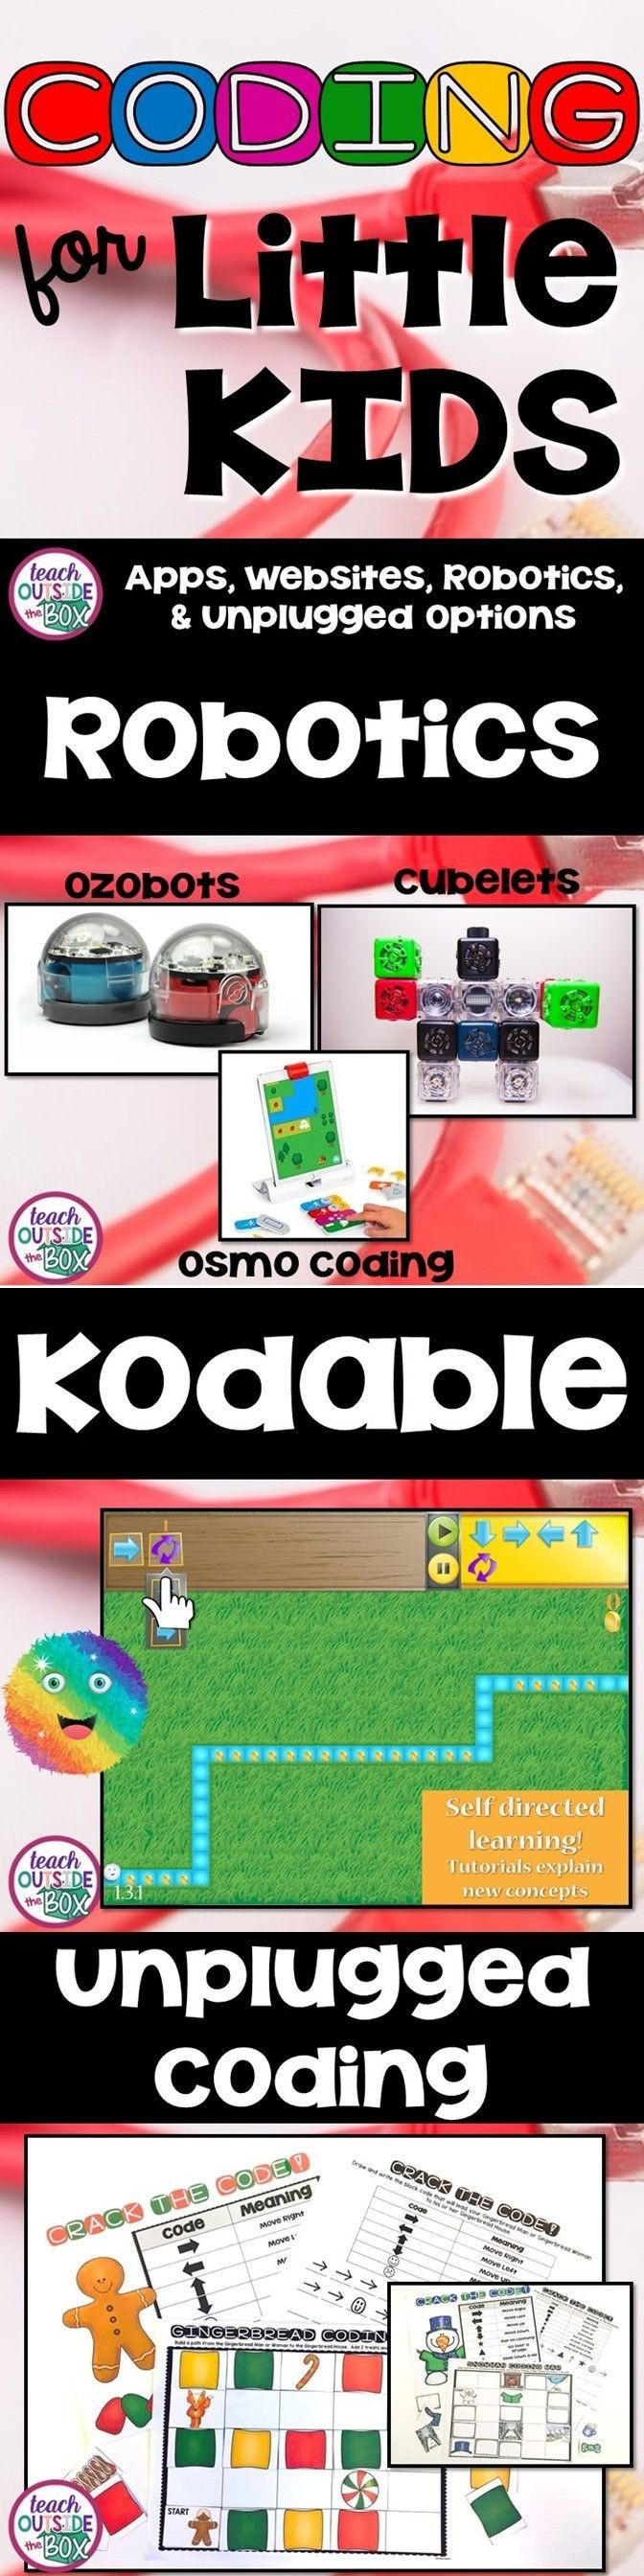 Apps Websites Robotics toys and unplugged coding options for young children